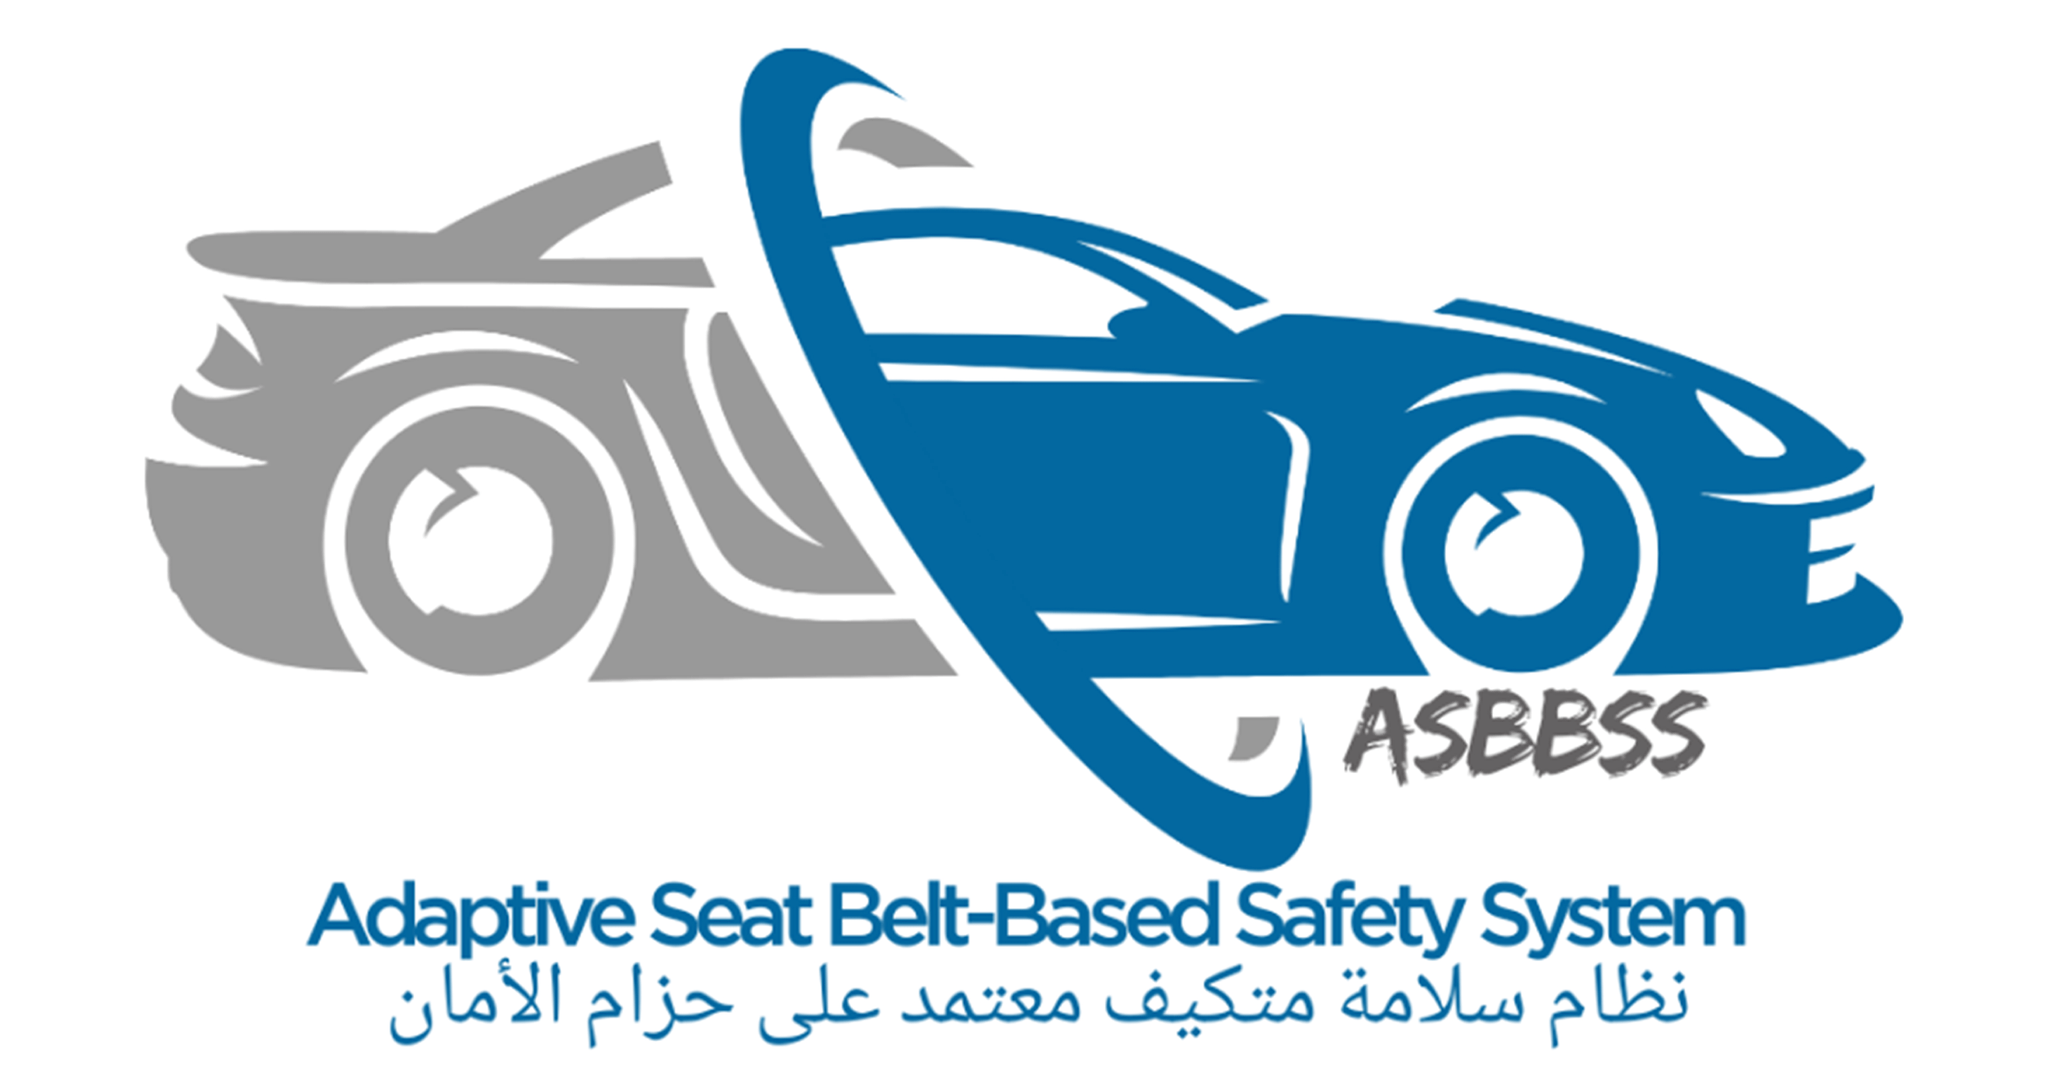 ASBBSS - Adaptive Seat Belt-Based Safety System